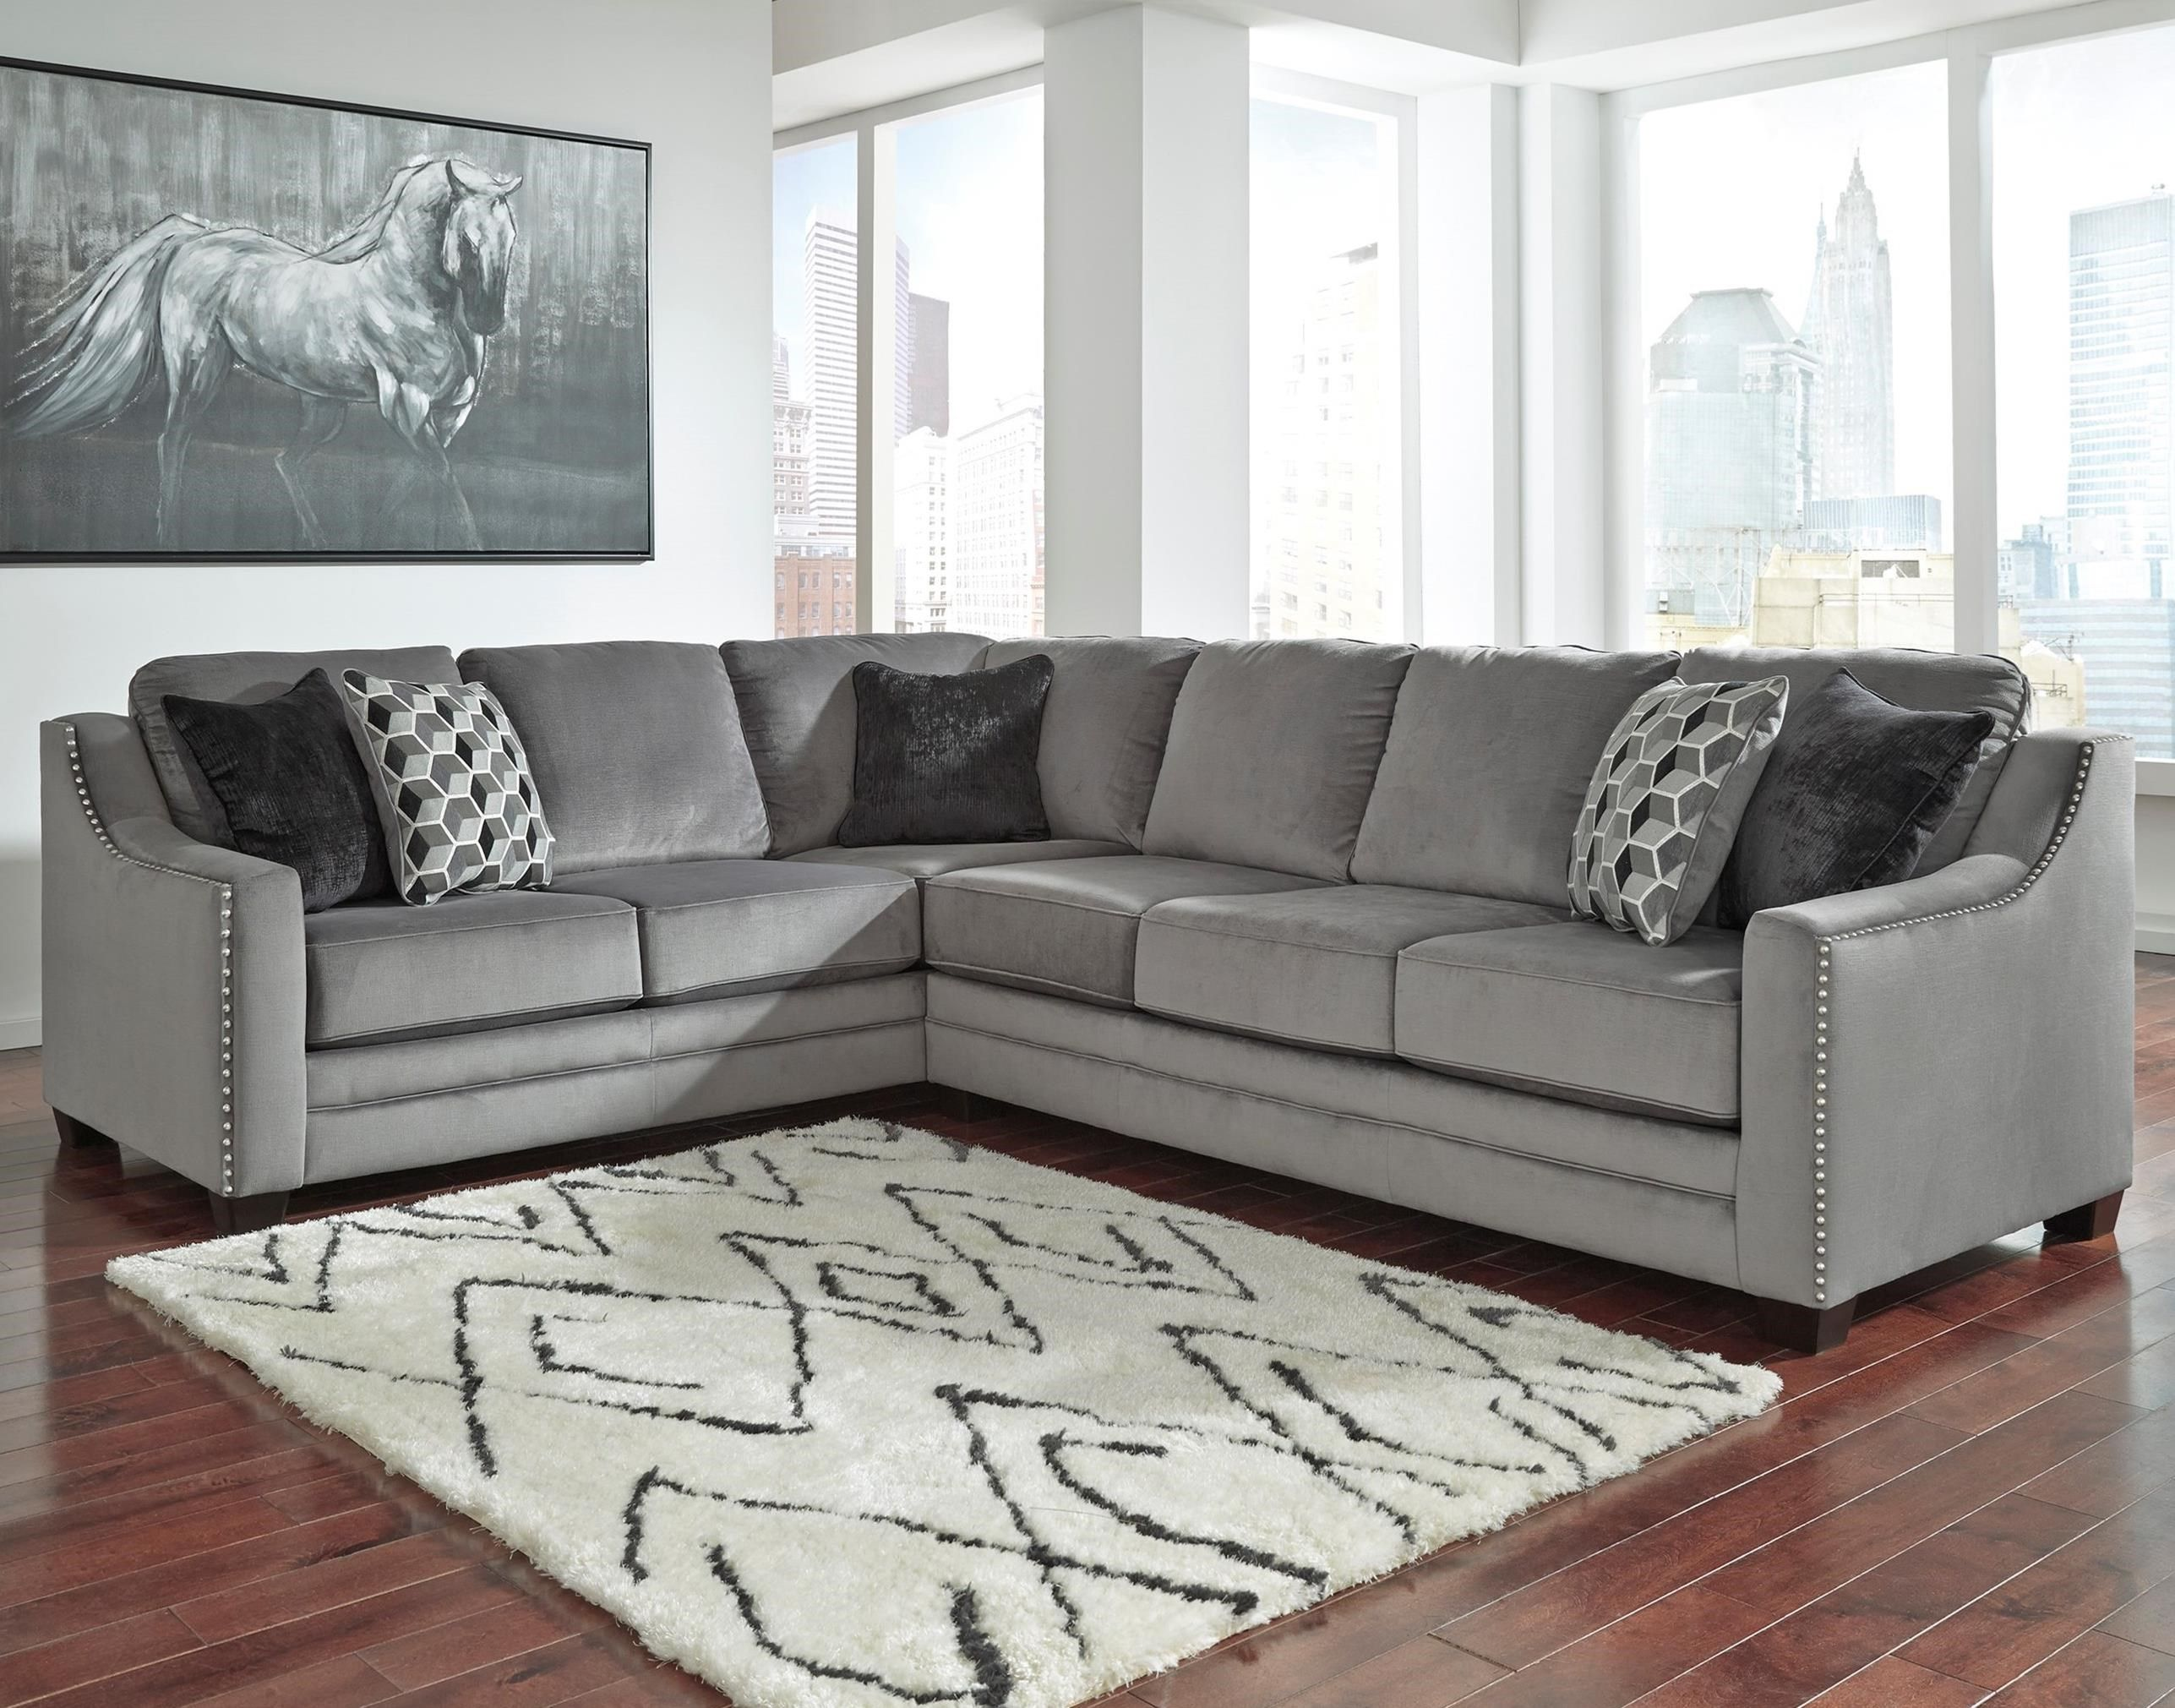 Best Bicknell 2 Piece Sectional With Right Sofa By Benchcraft Sectional Sofa Sale Sectional Sofa 400 x 300